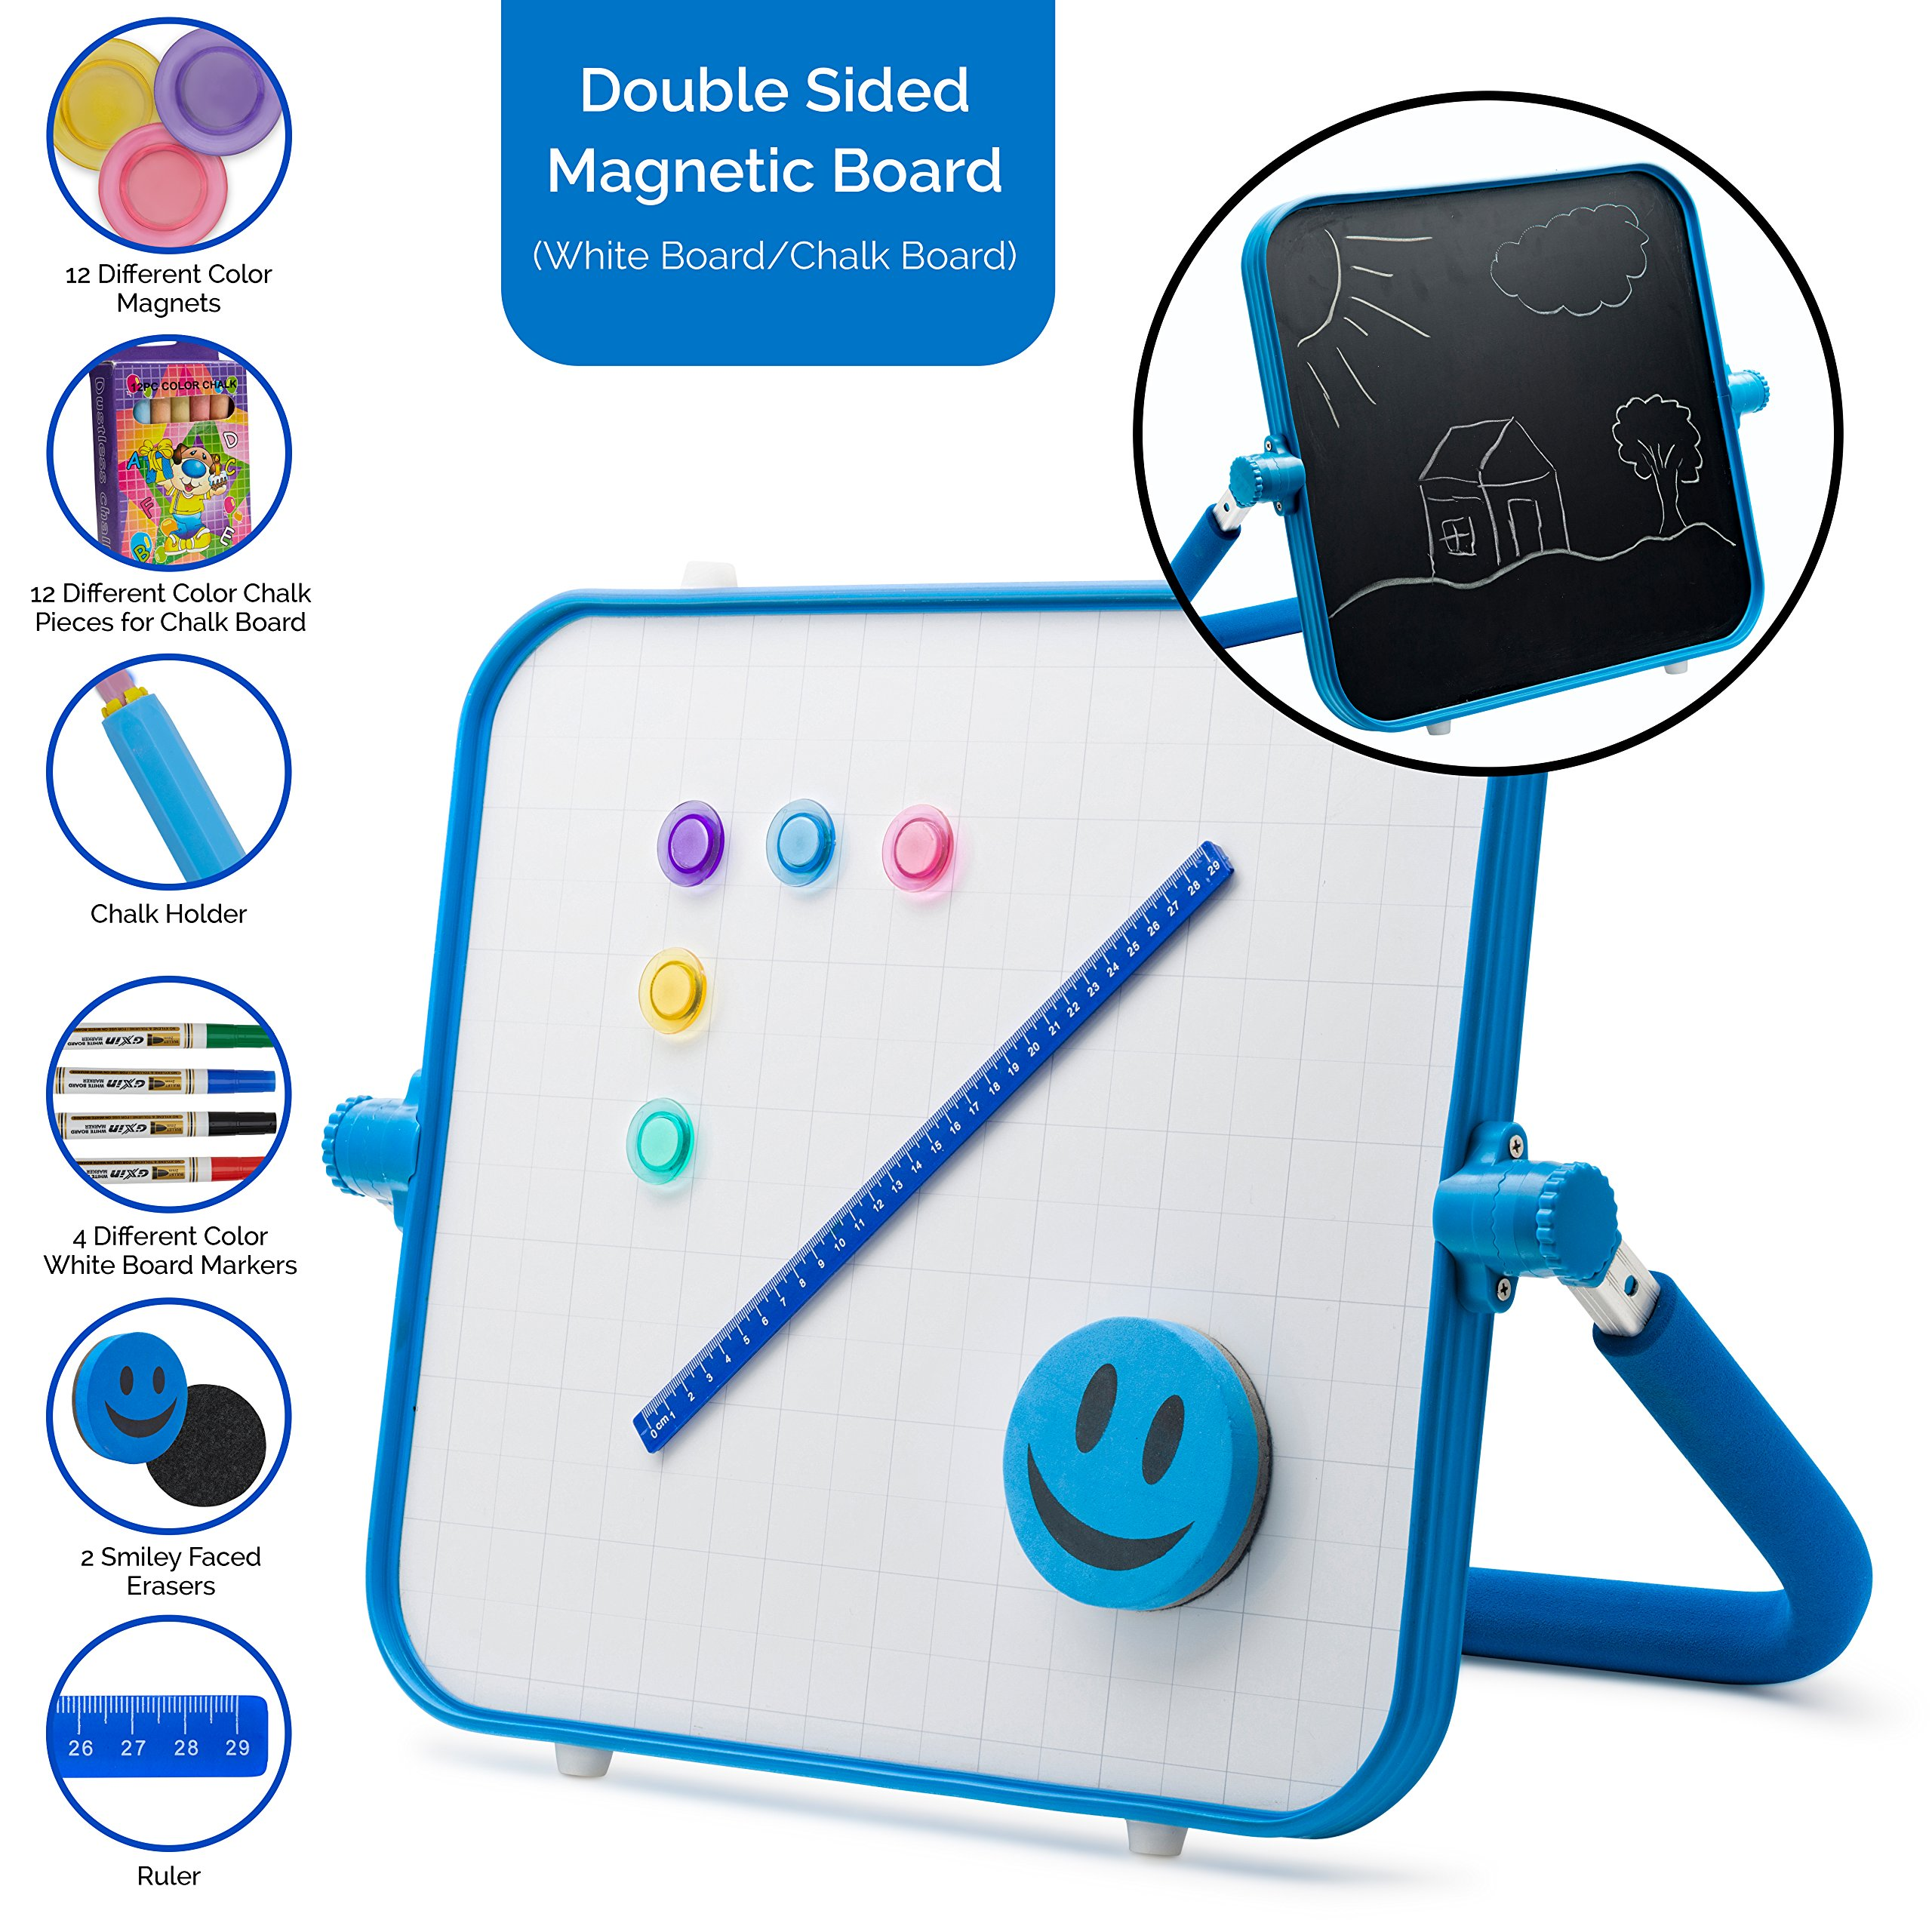 Morvat Premium 2-sided Tabletop Art Easel for Kids, Dry Erase and Chalk Board Set for Toddlers and Children, Great Activity and Gift for Kids, Magnetic, Washable | Blue